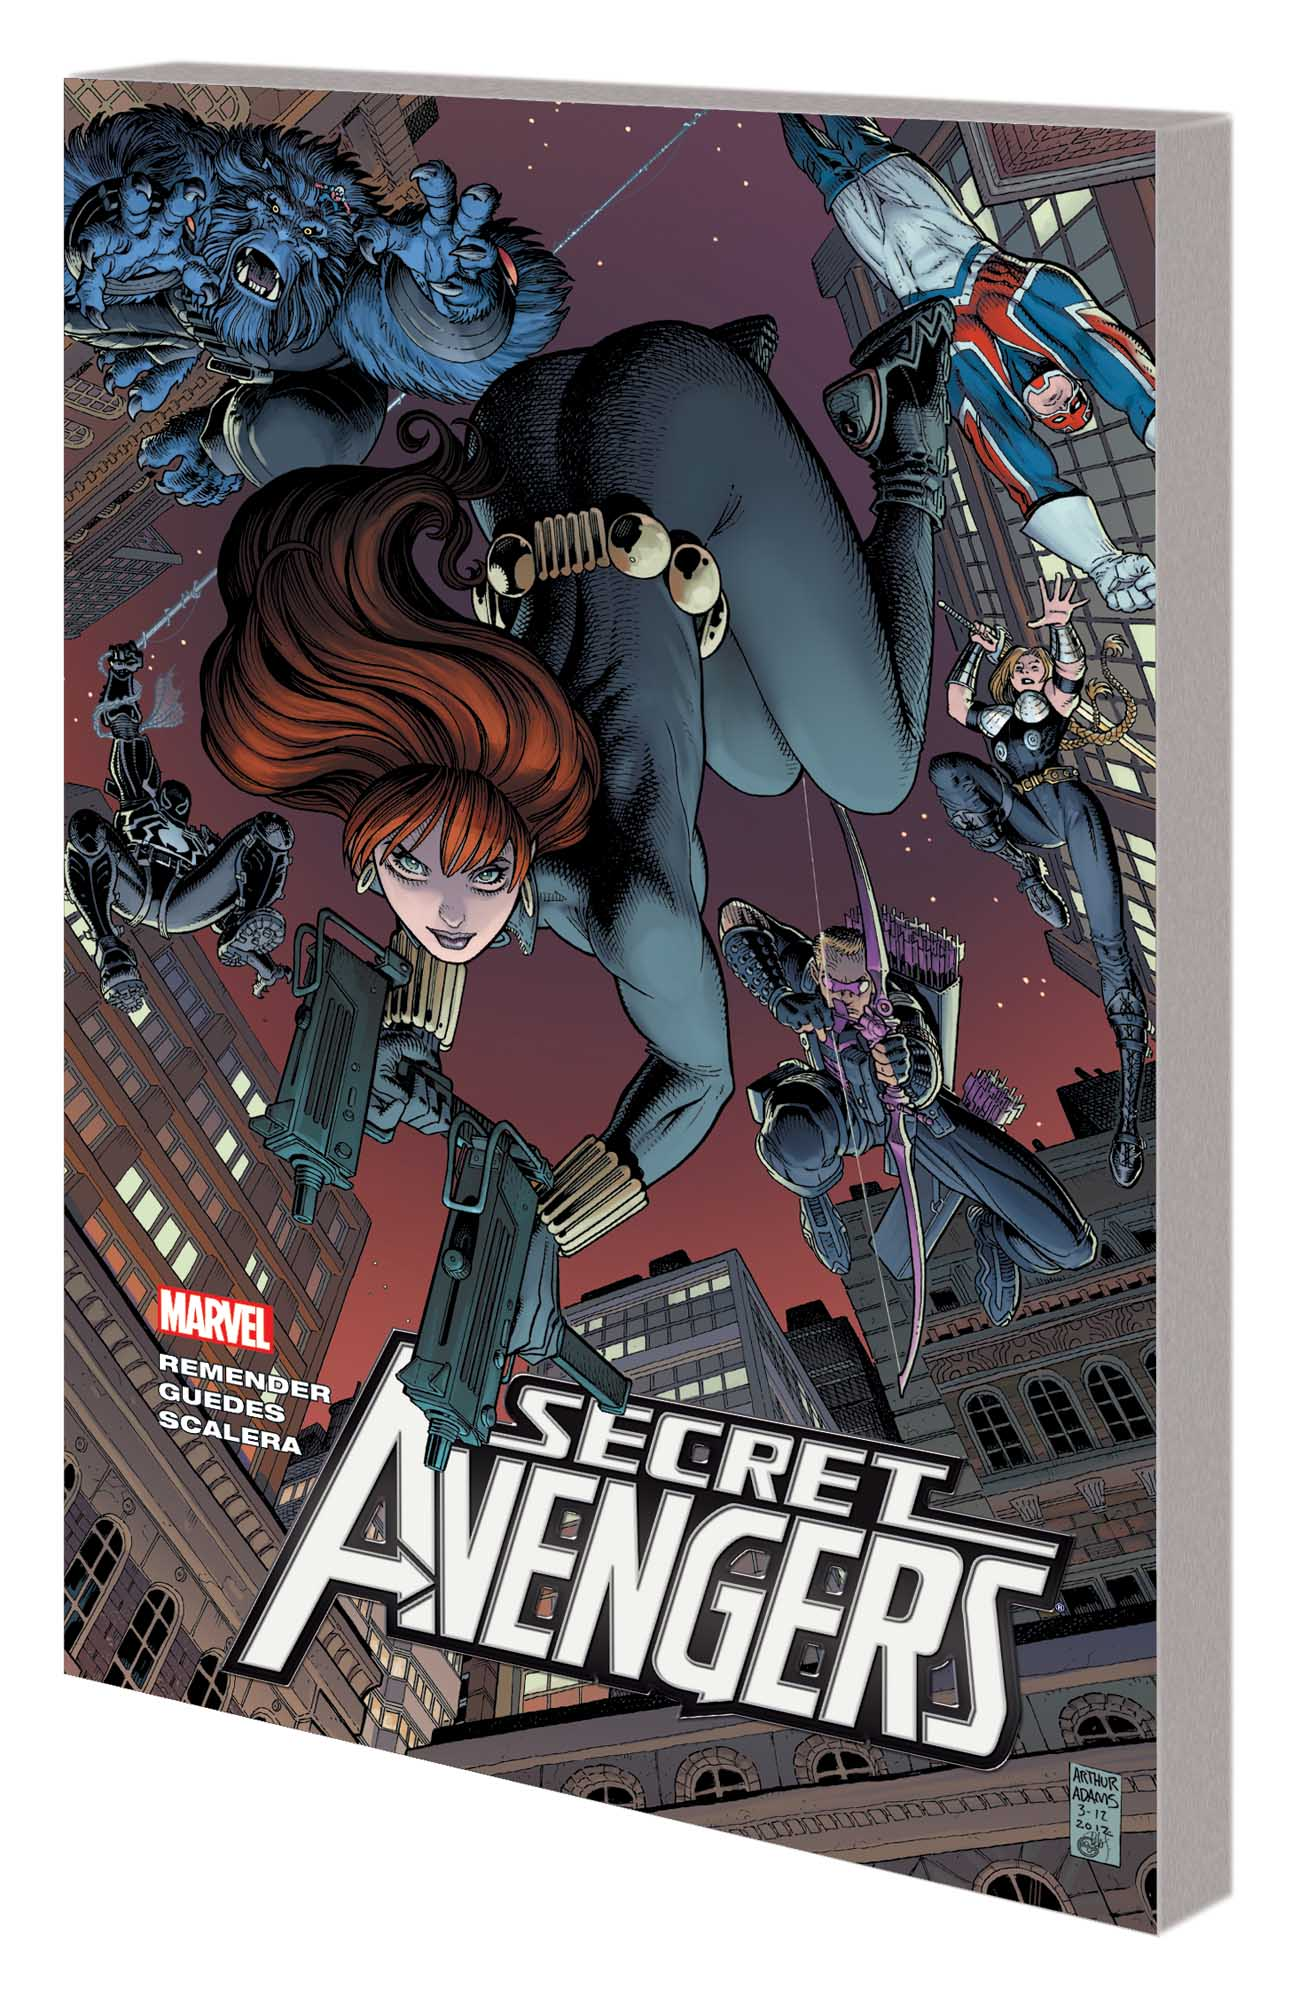 Secret Avengers by Rick Remender Vol. 2 (Trade Paperback)